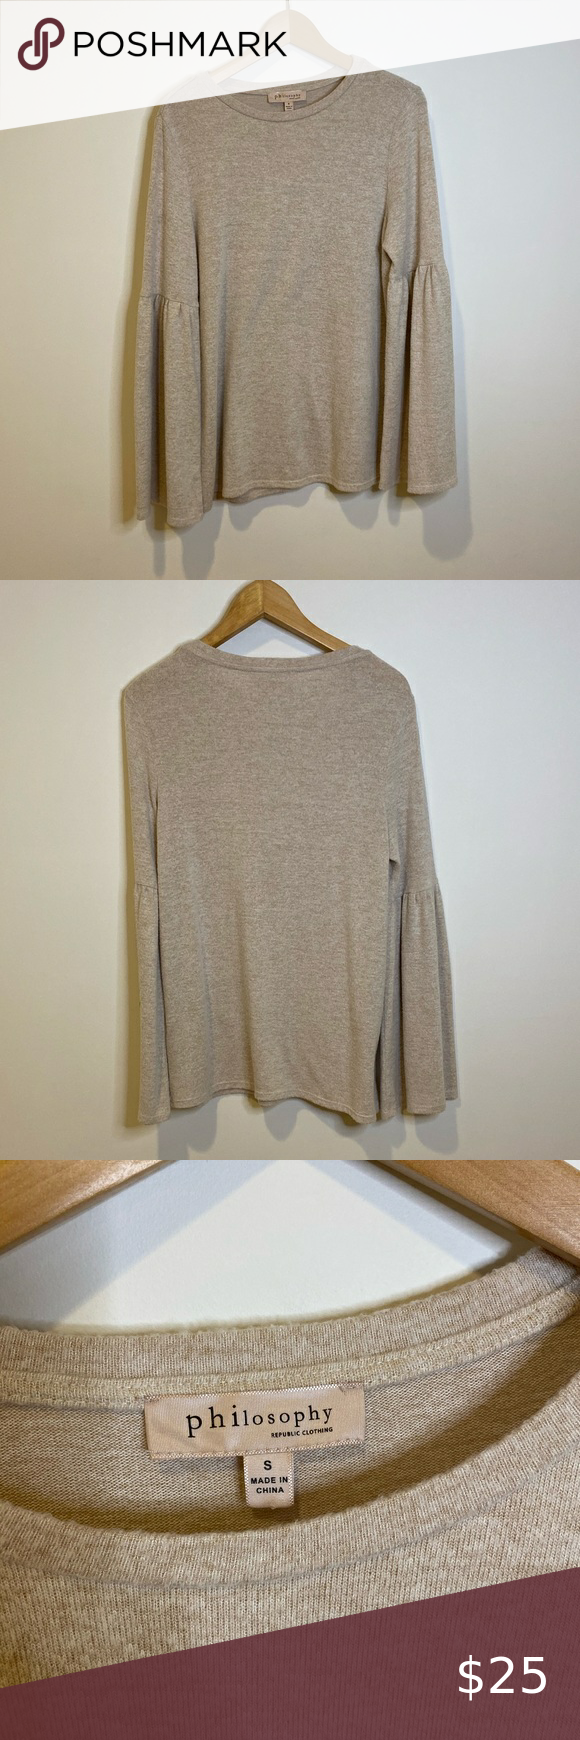 Anthro Philosophy Bell Sleeve Sweater Size S Bell Sleeve Sweater Bell Sleeves Sweater Sizes